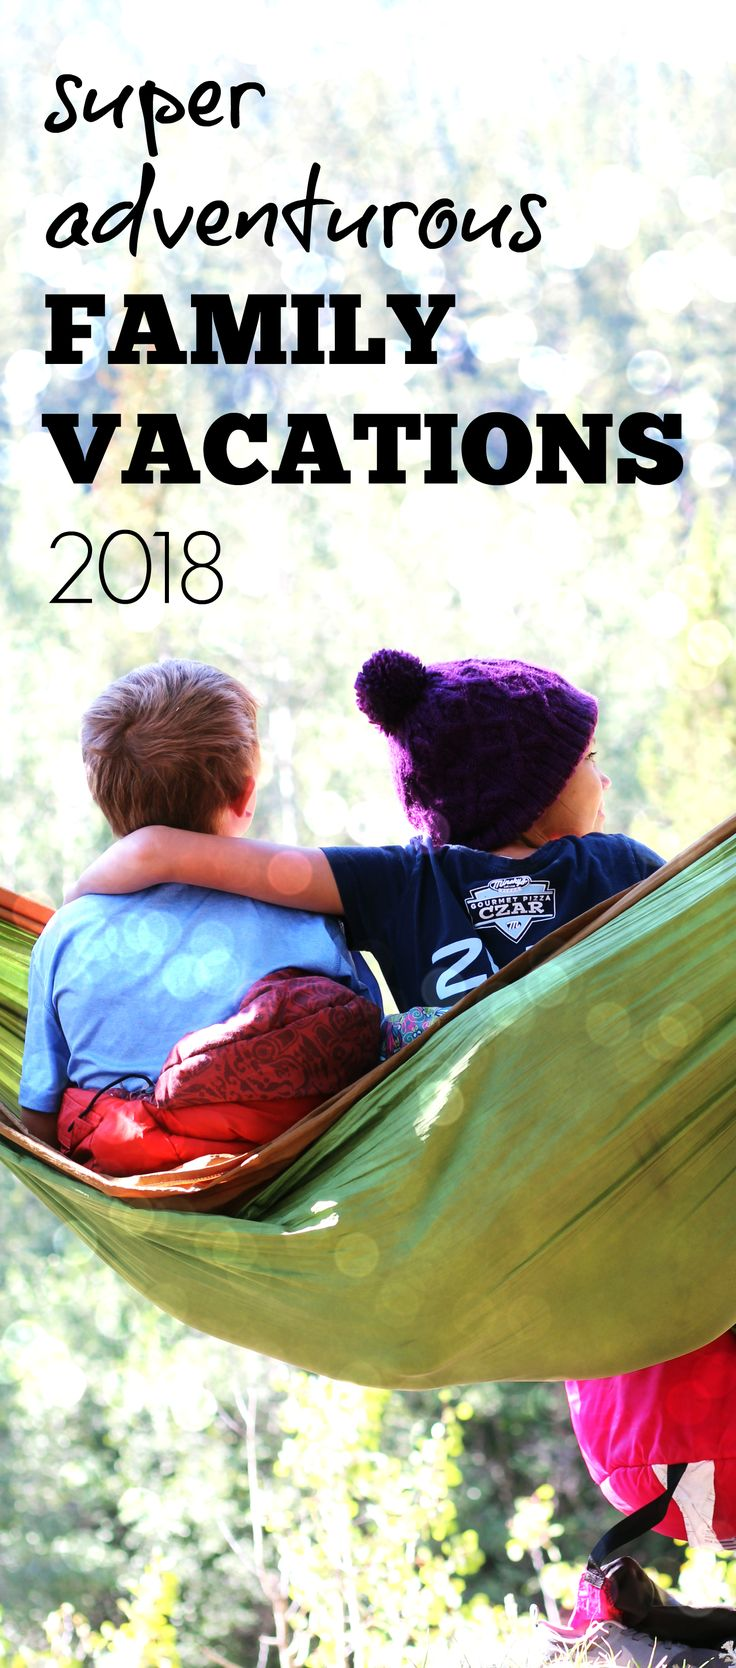 Our best family vacation ideas with kids and teens in the U.S. and abroad for 2018. Super, adventurous places and destinations for travel this coming year.